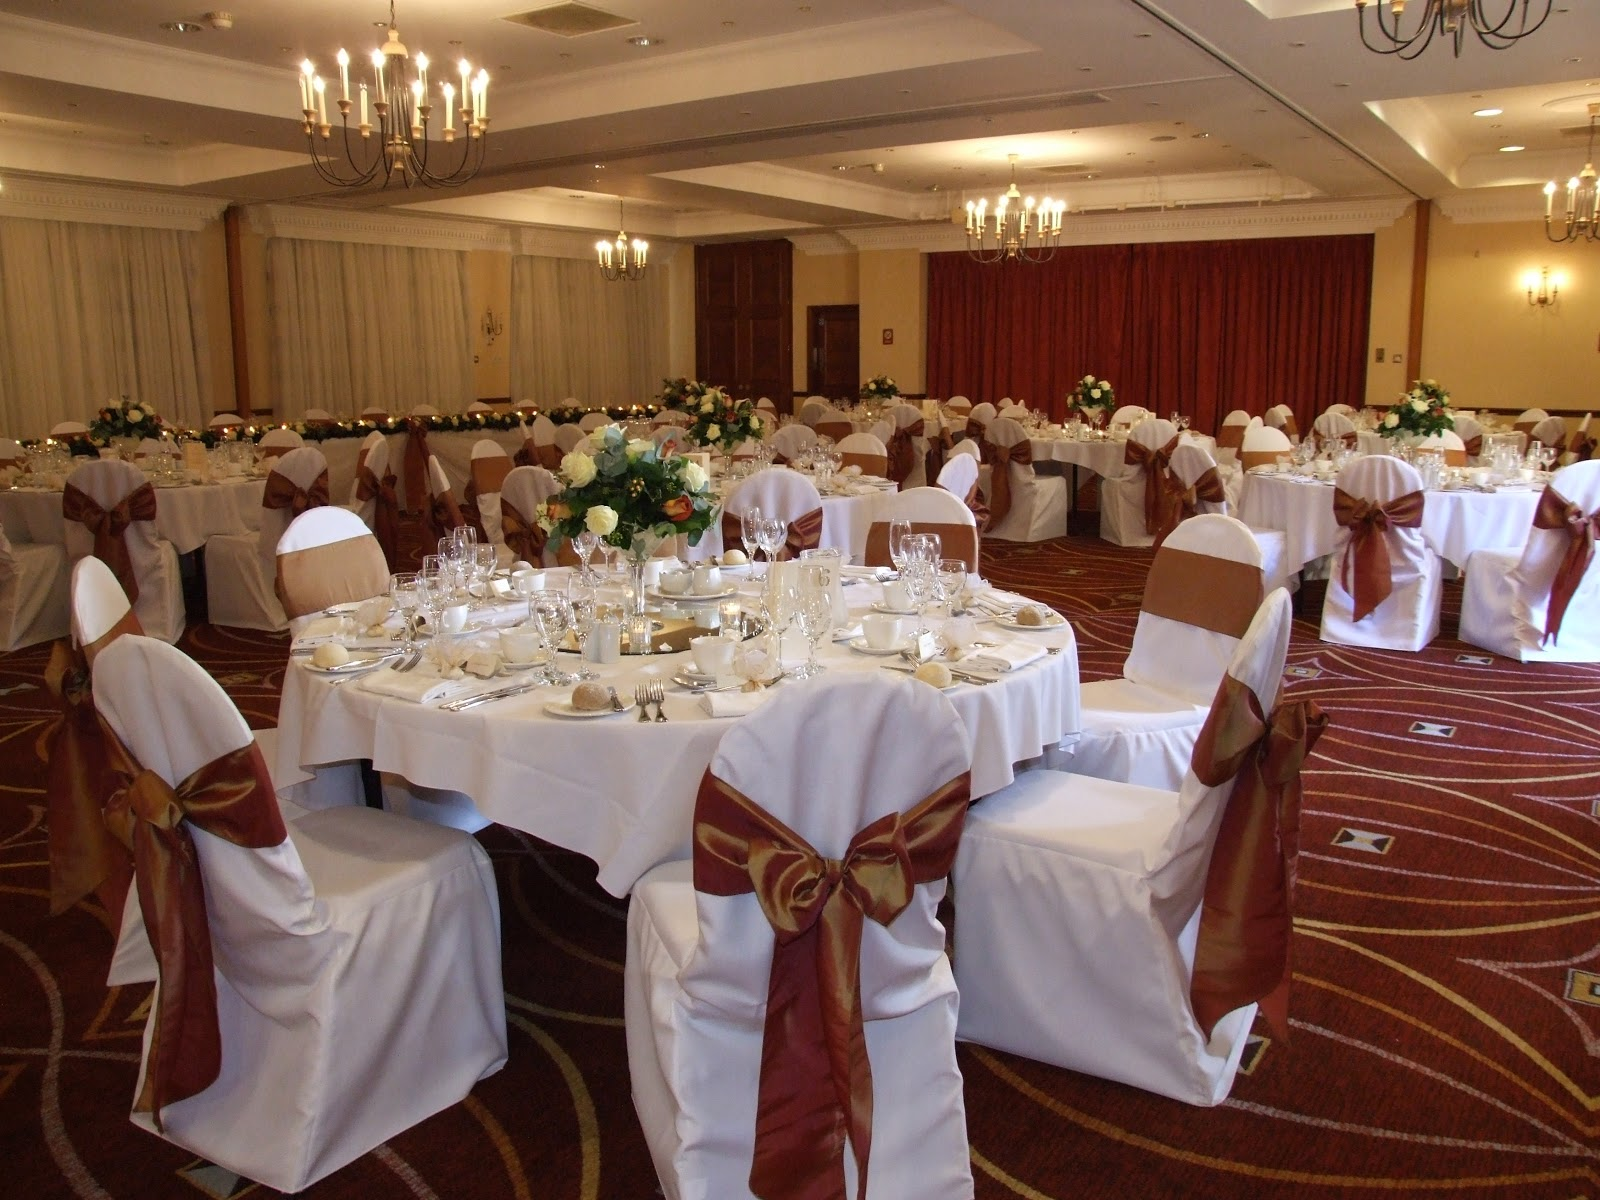 wedding chair covers hire prices grey parsons crystal flowers organza bows to package price available wirral merseyside cheshire